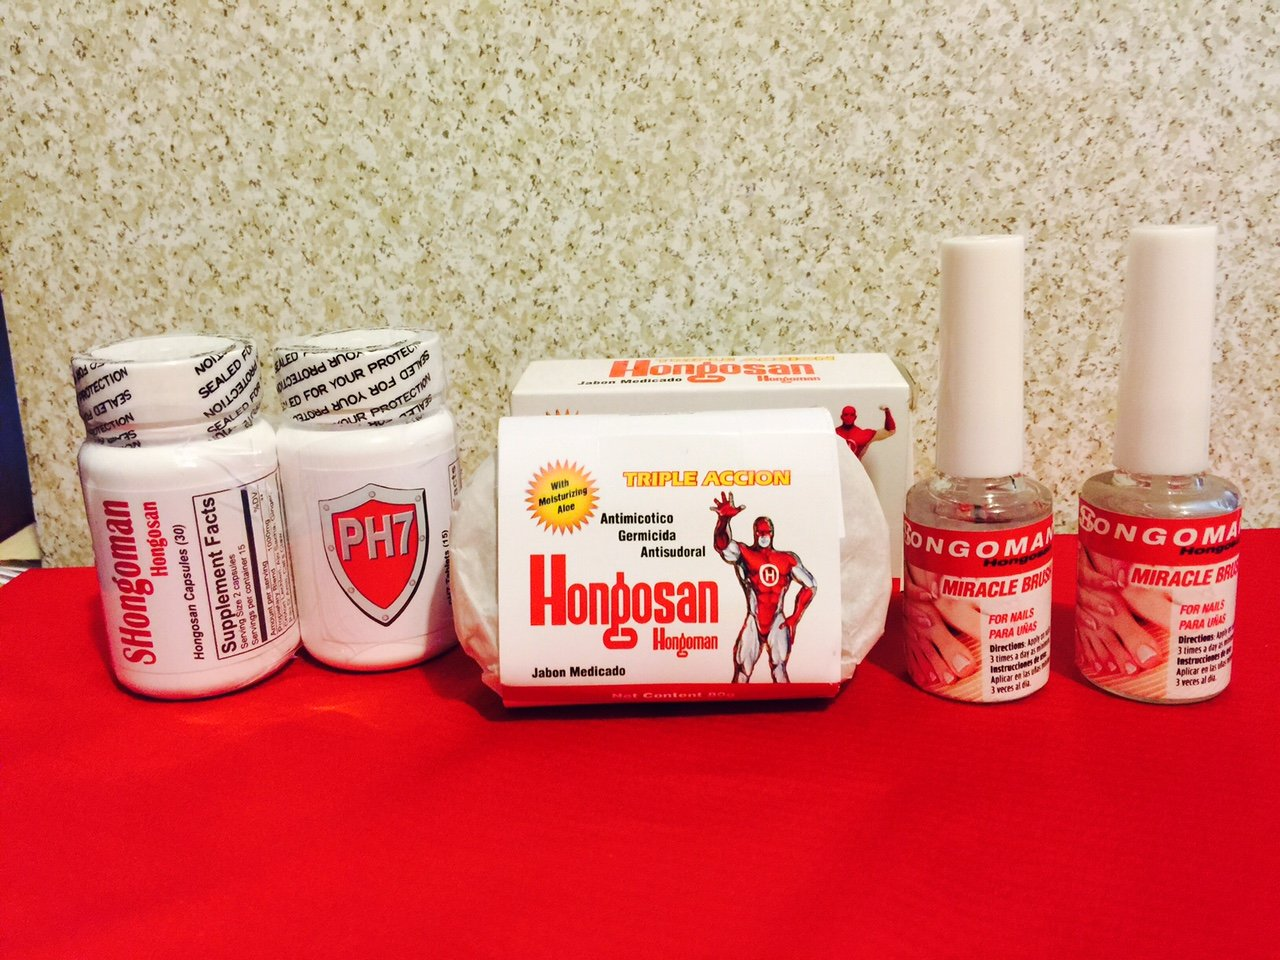 Amazon.com: Hongosan Hongoman Spray (The Original): Health & Personal Care